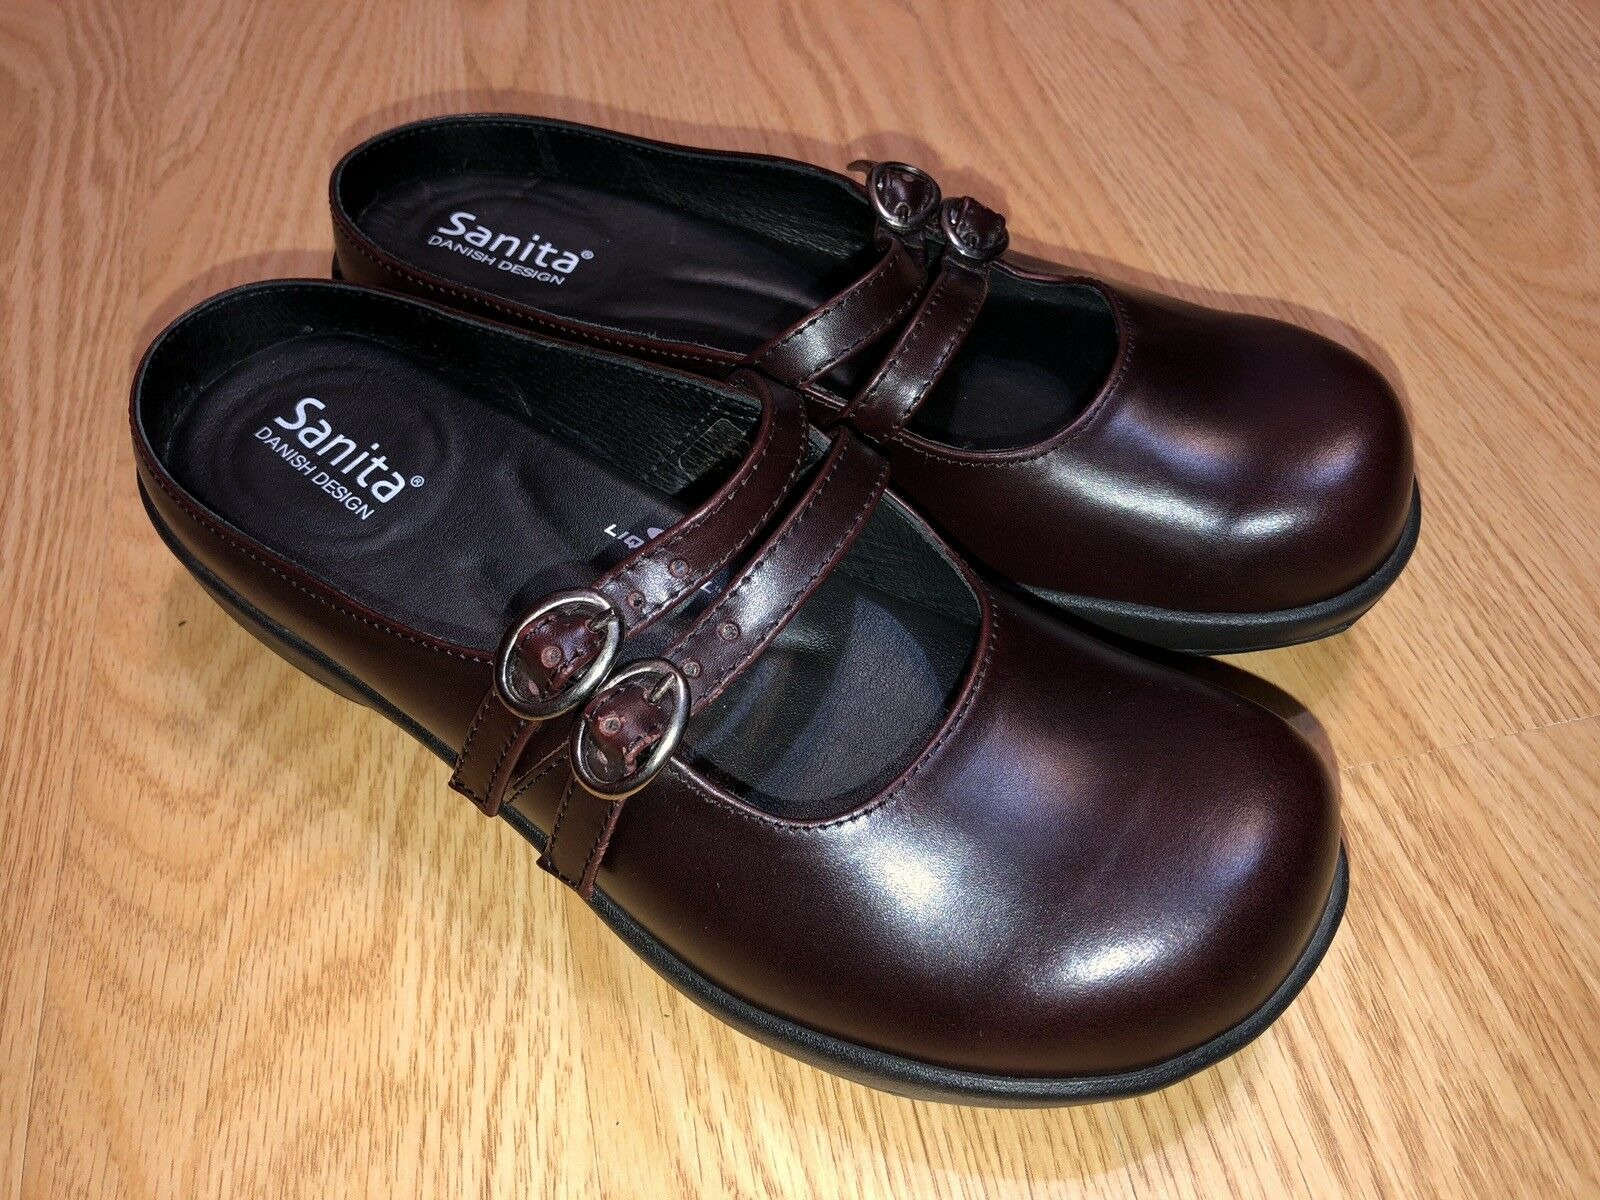 Women's Sanita adjustable Burgundy Leather Clogs Mules US 7.5 Sz Very Clean